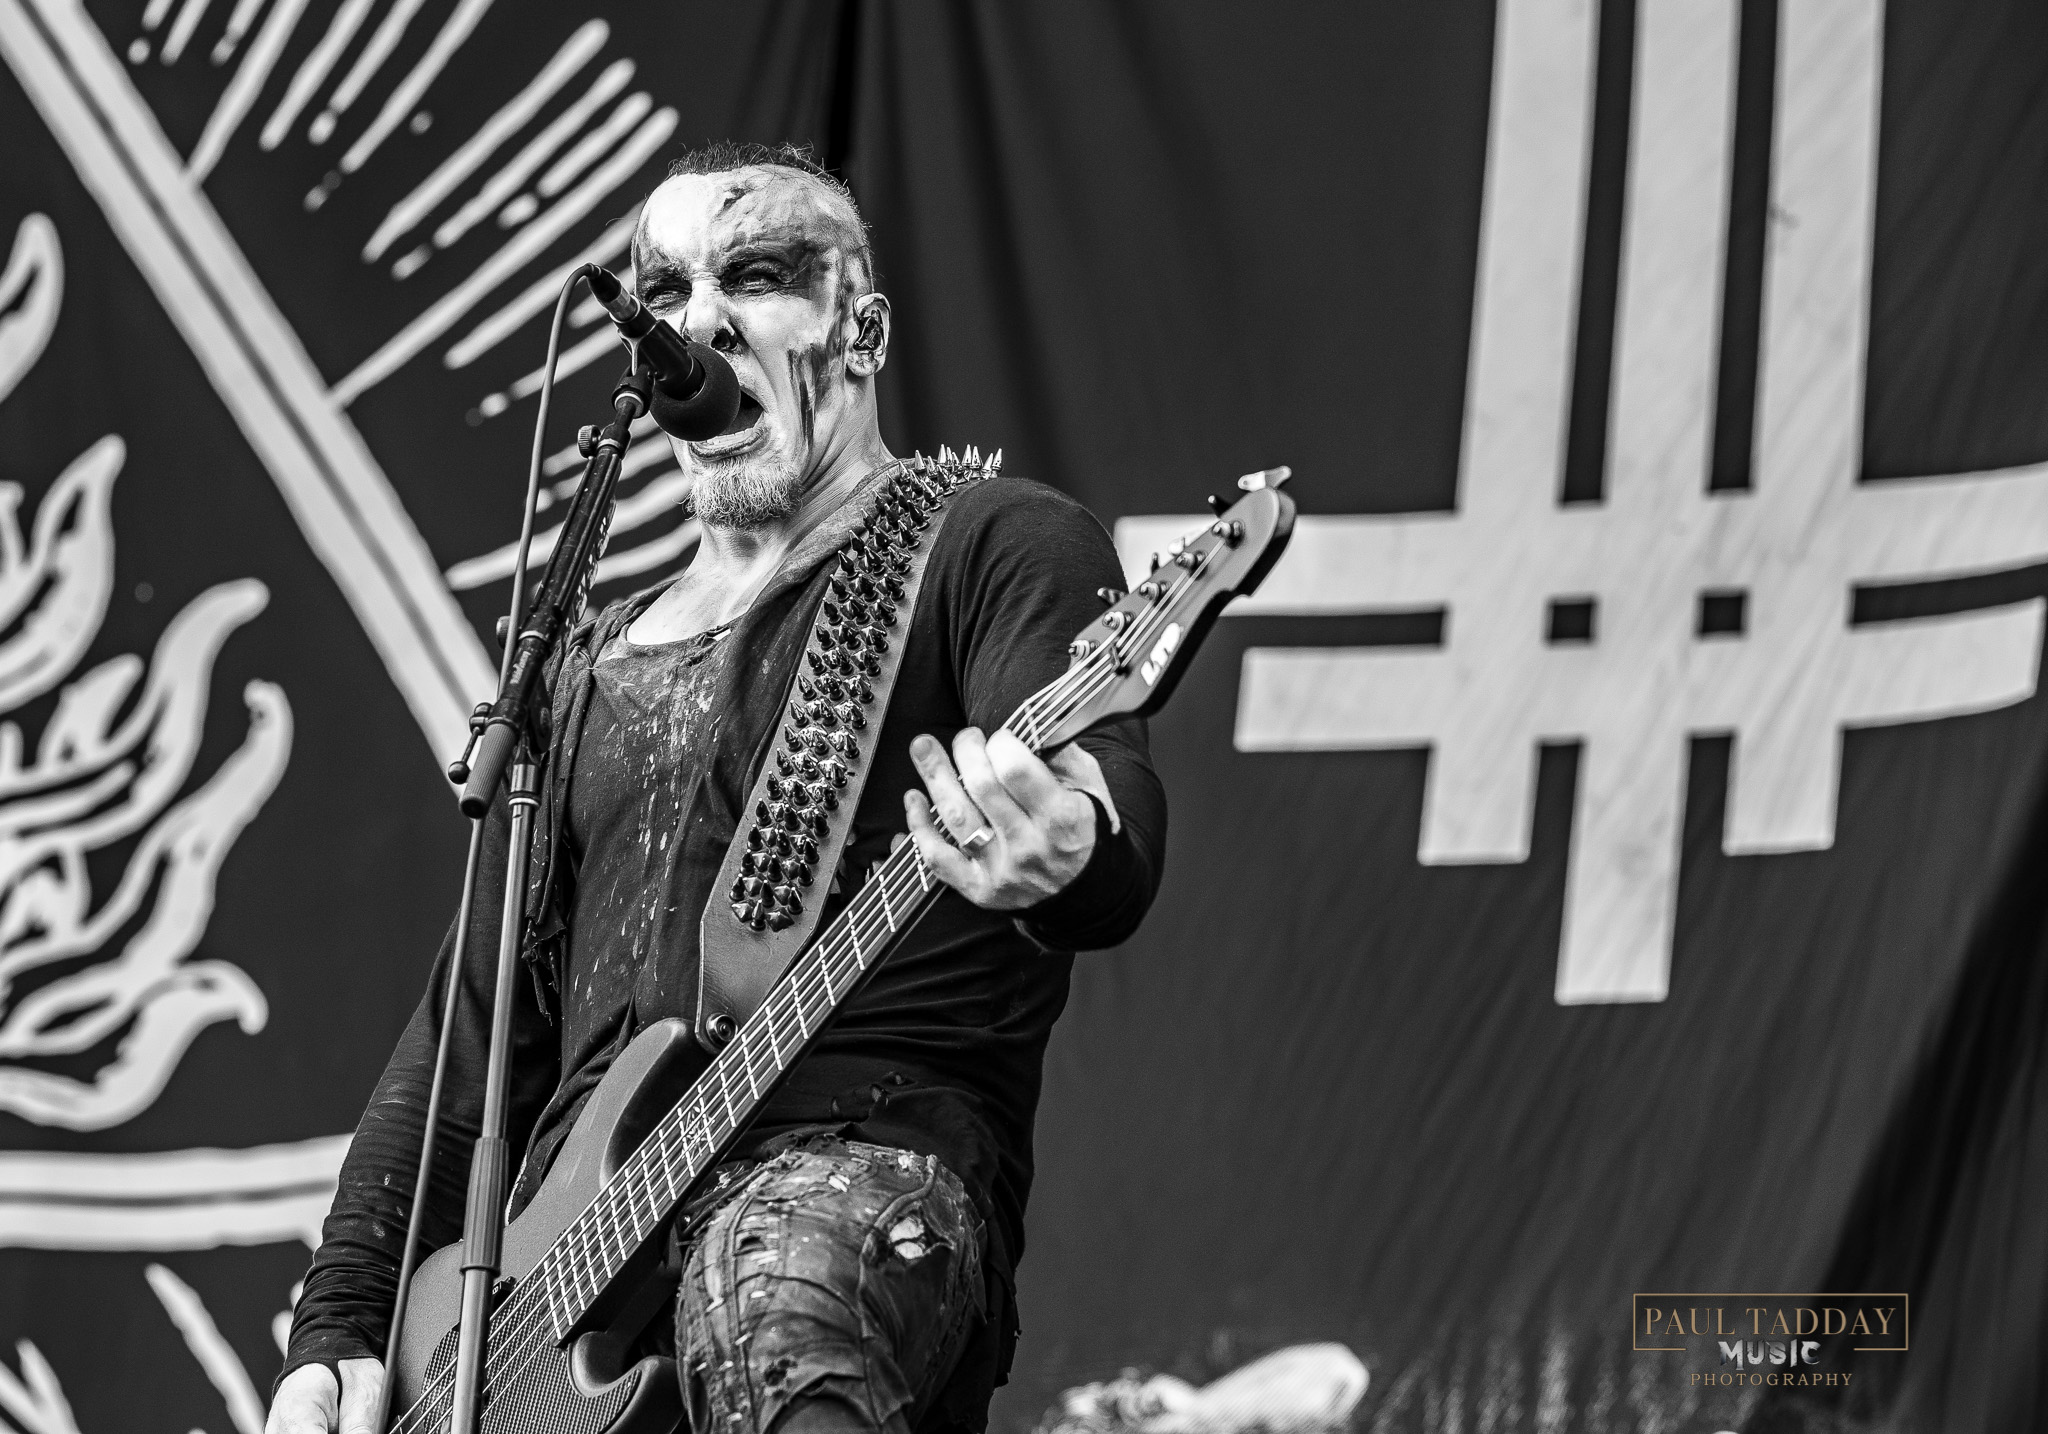 behemoth - download melbourne - march 2019 - web - paul tadday photography - 21.jpg